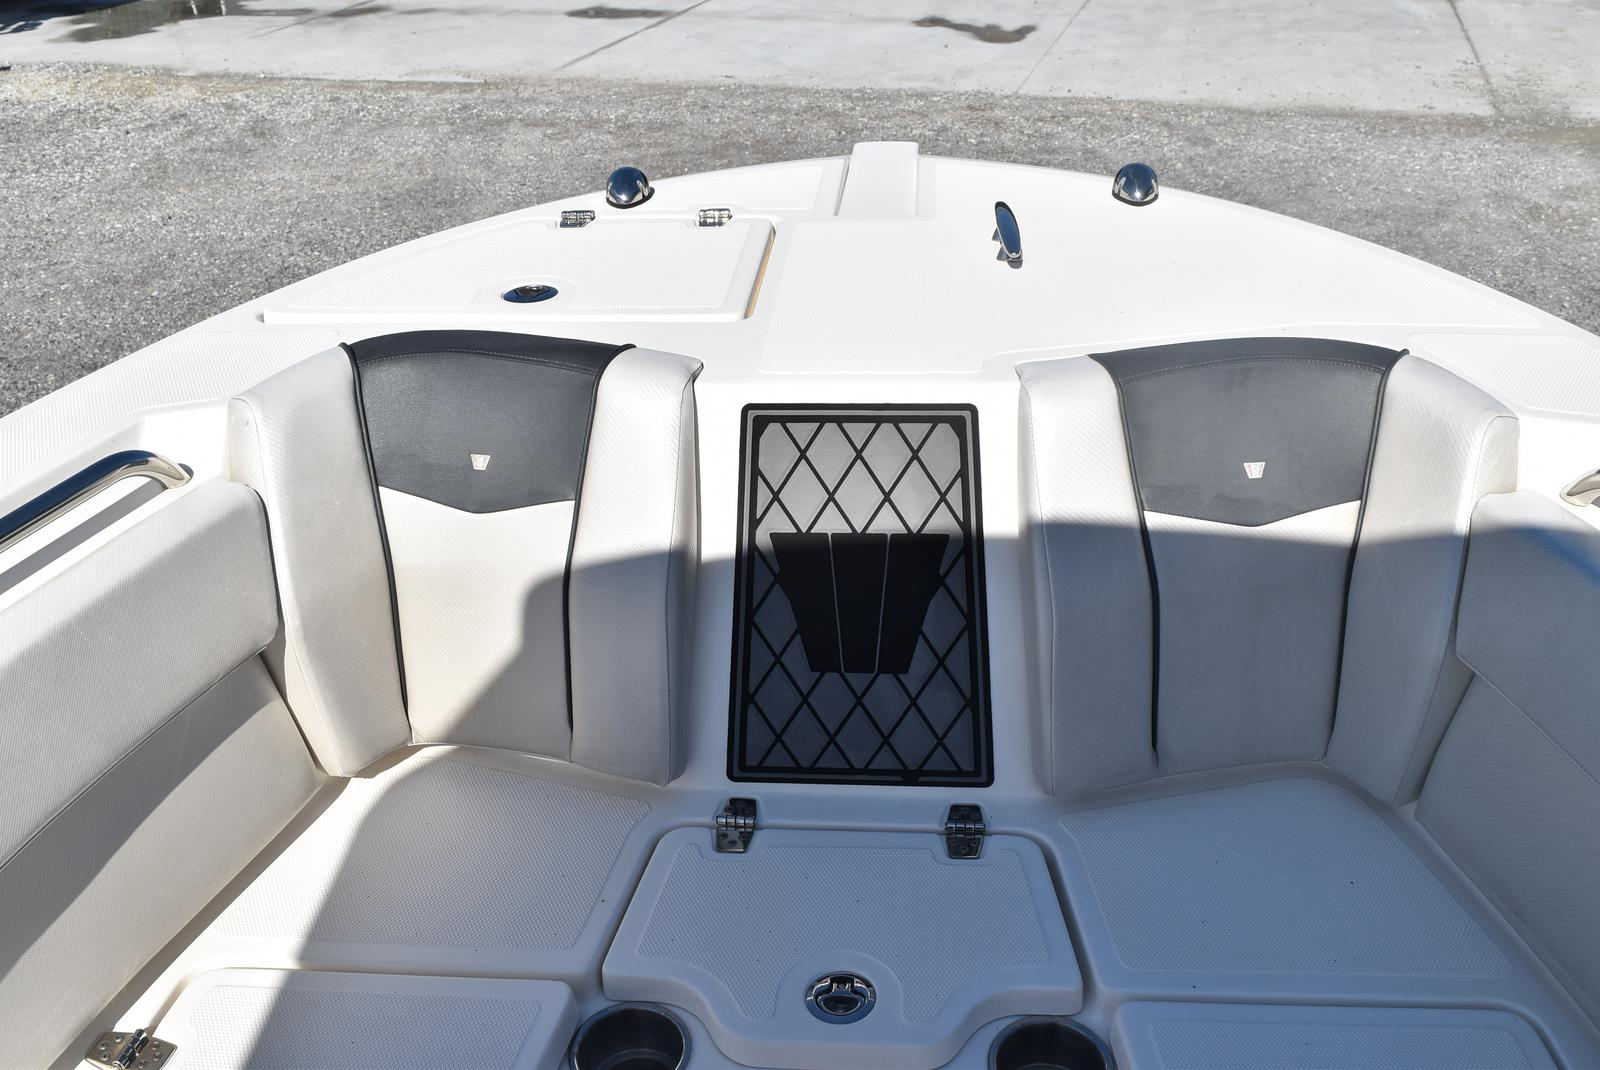 2016 Wellcraft boat for sale, model of the boat is 242 & Image # 6 of 19